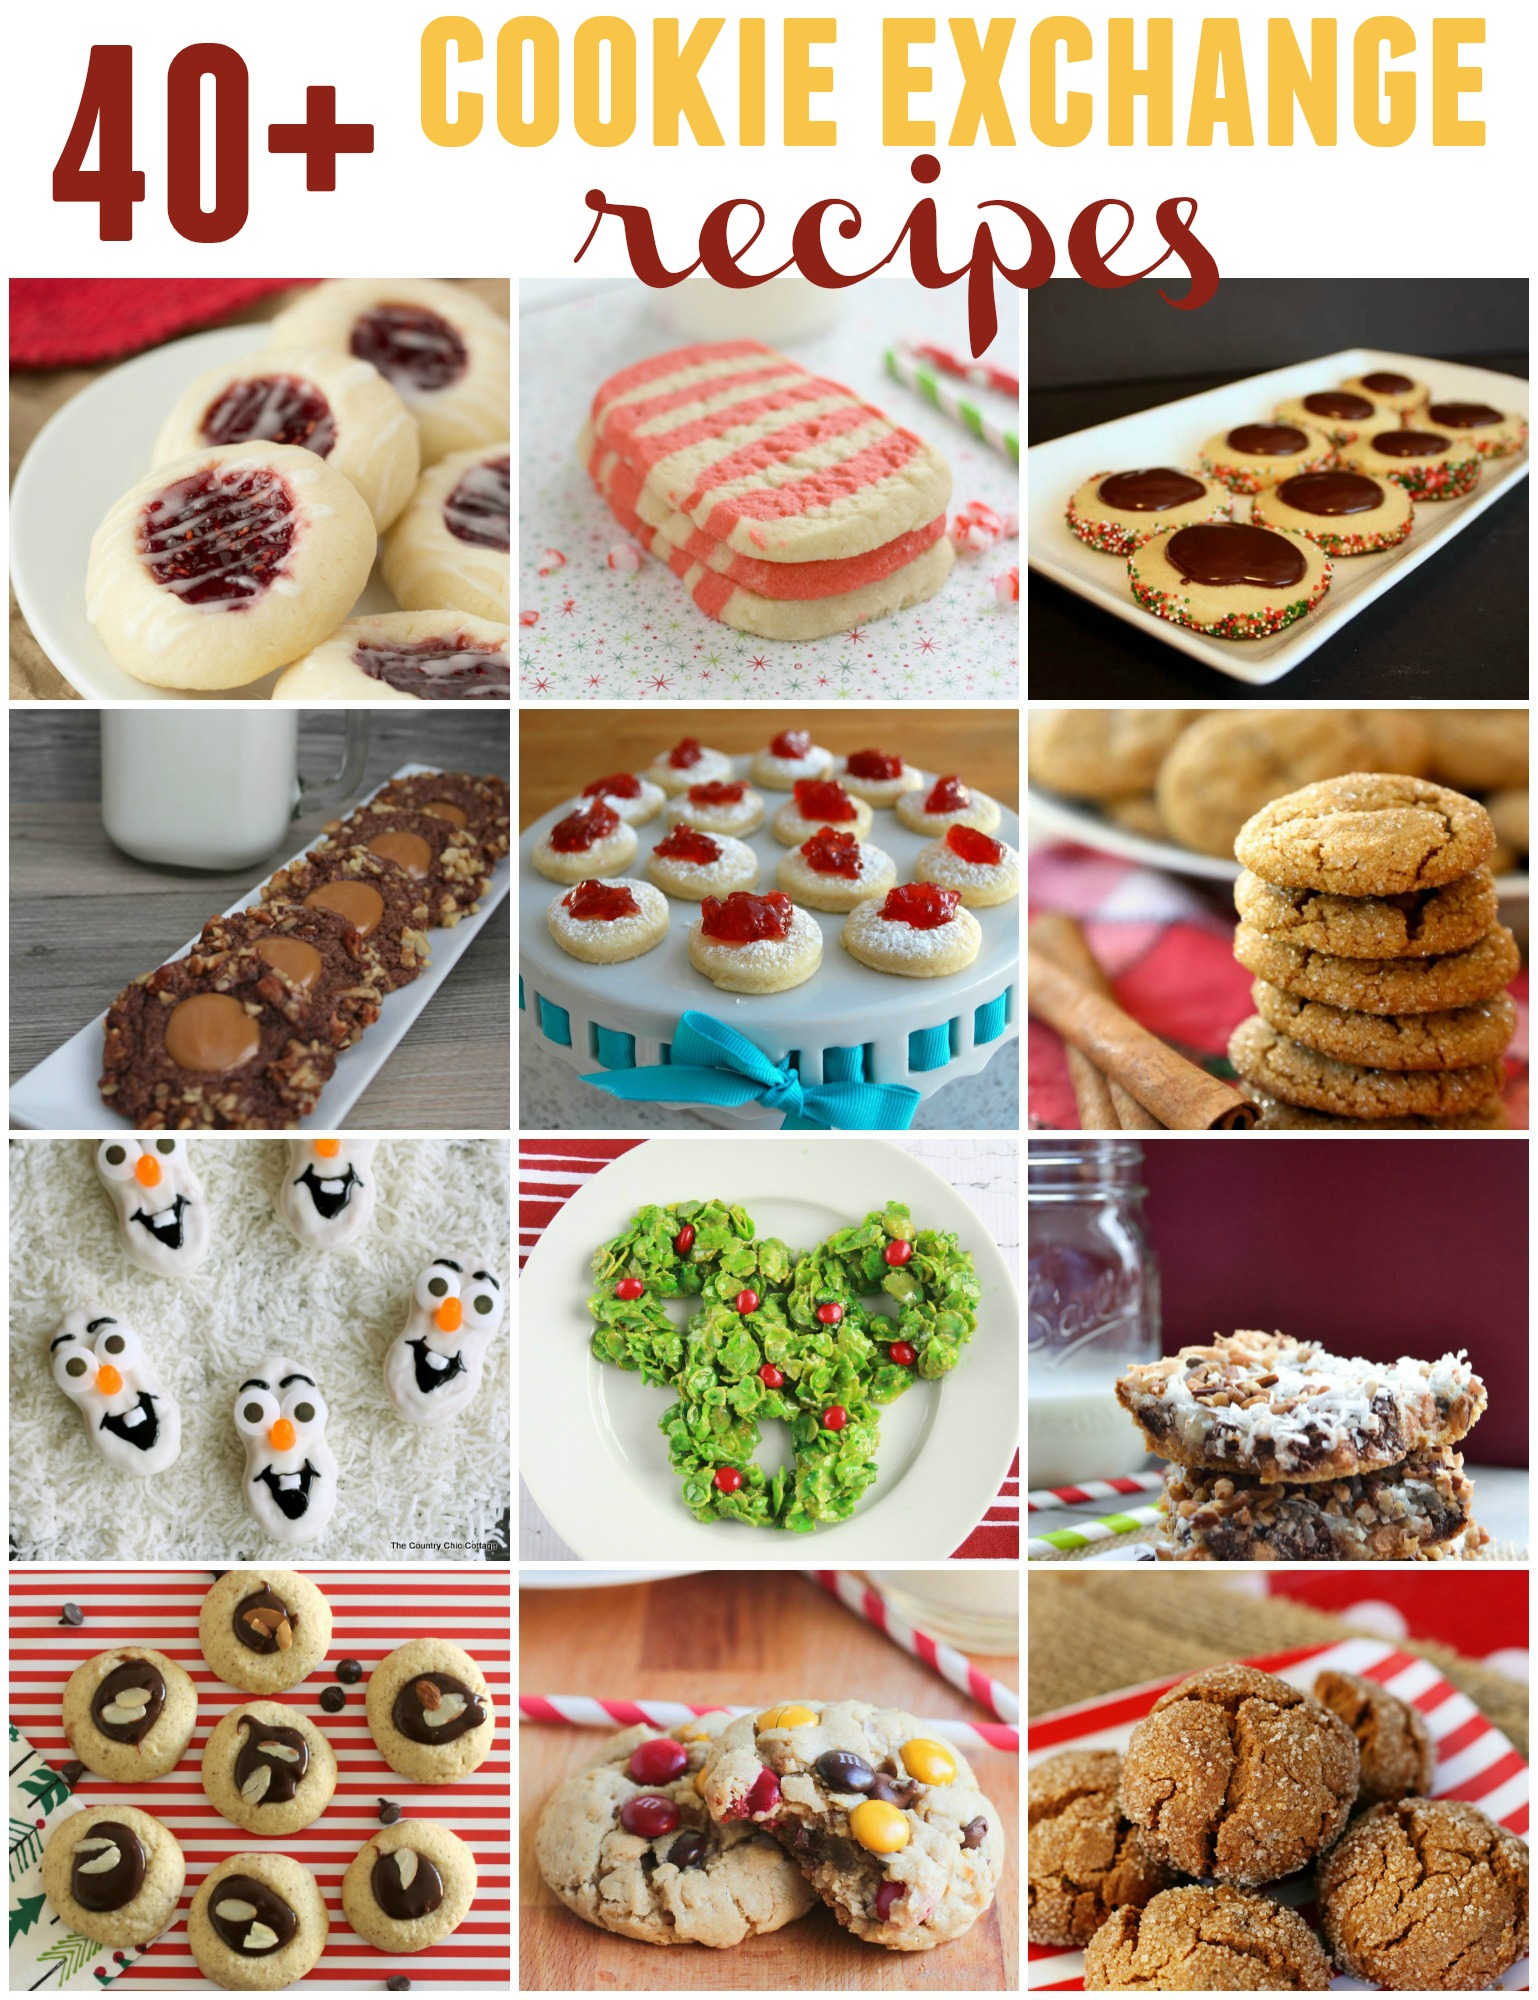 COOKIE EXCHANGE INSPIRATION (9+ recipes)